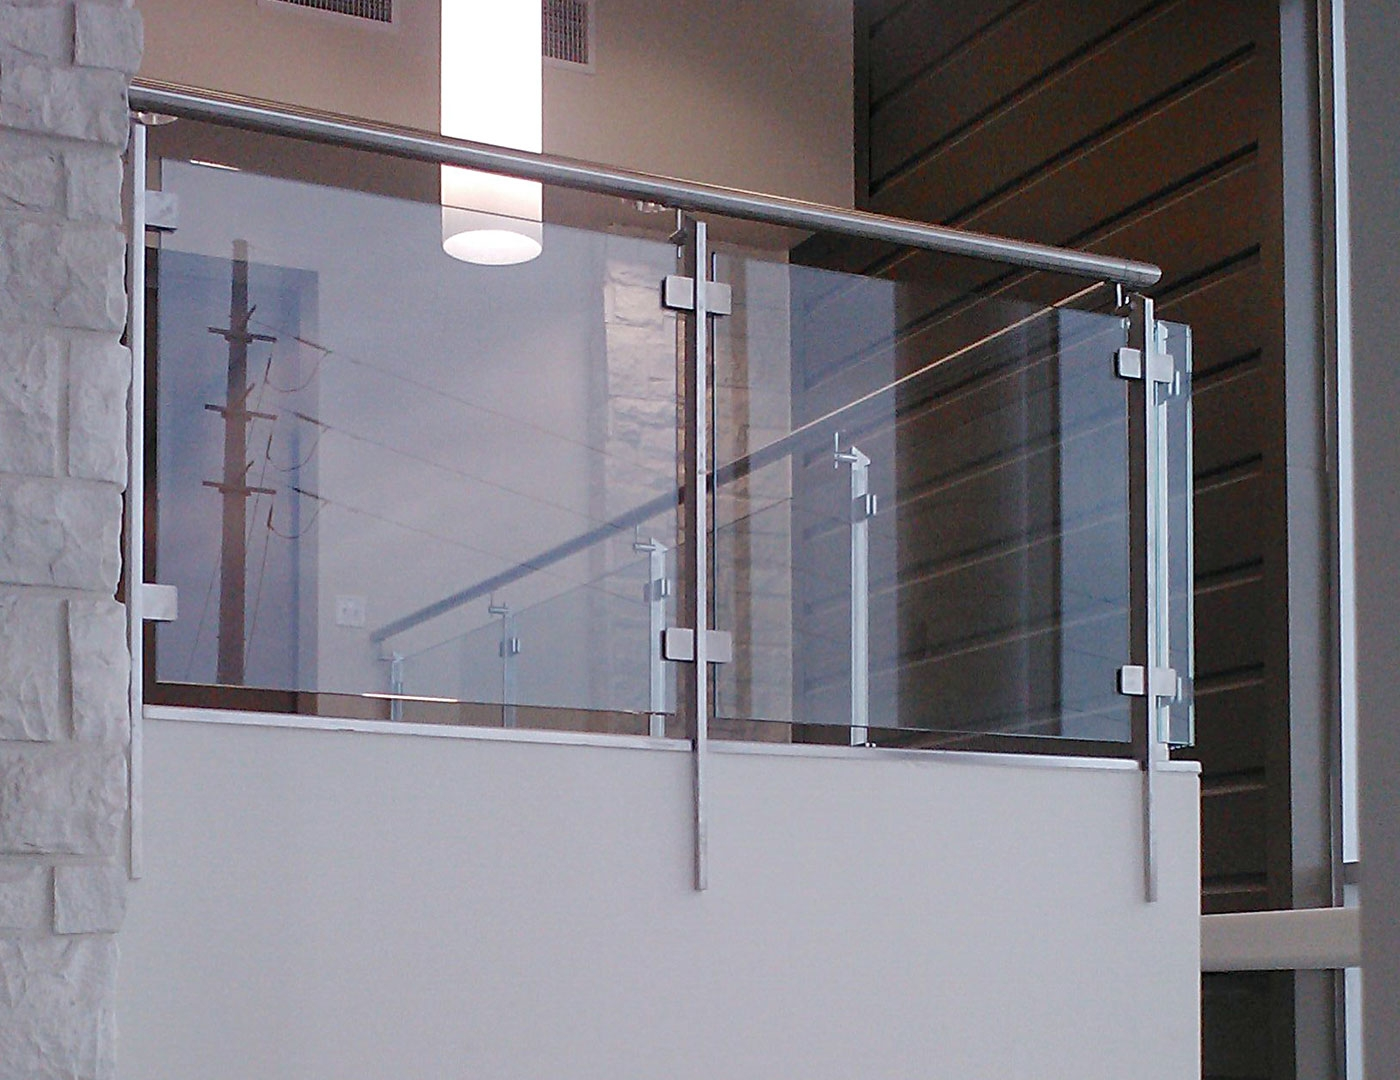 galleryrailings0010